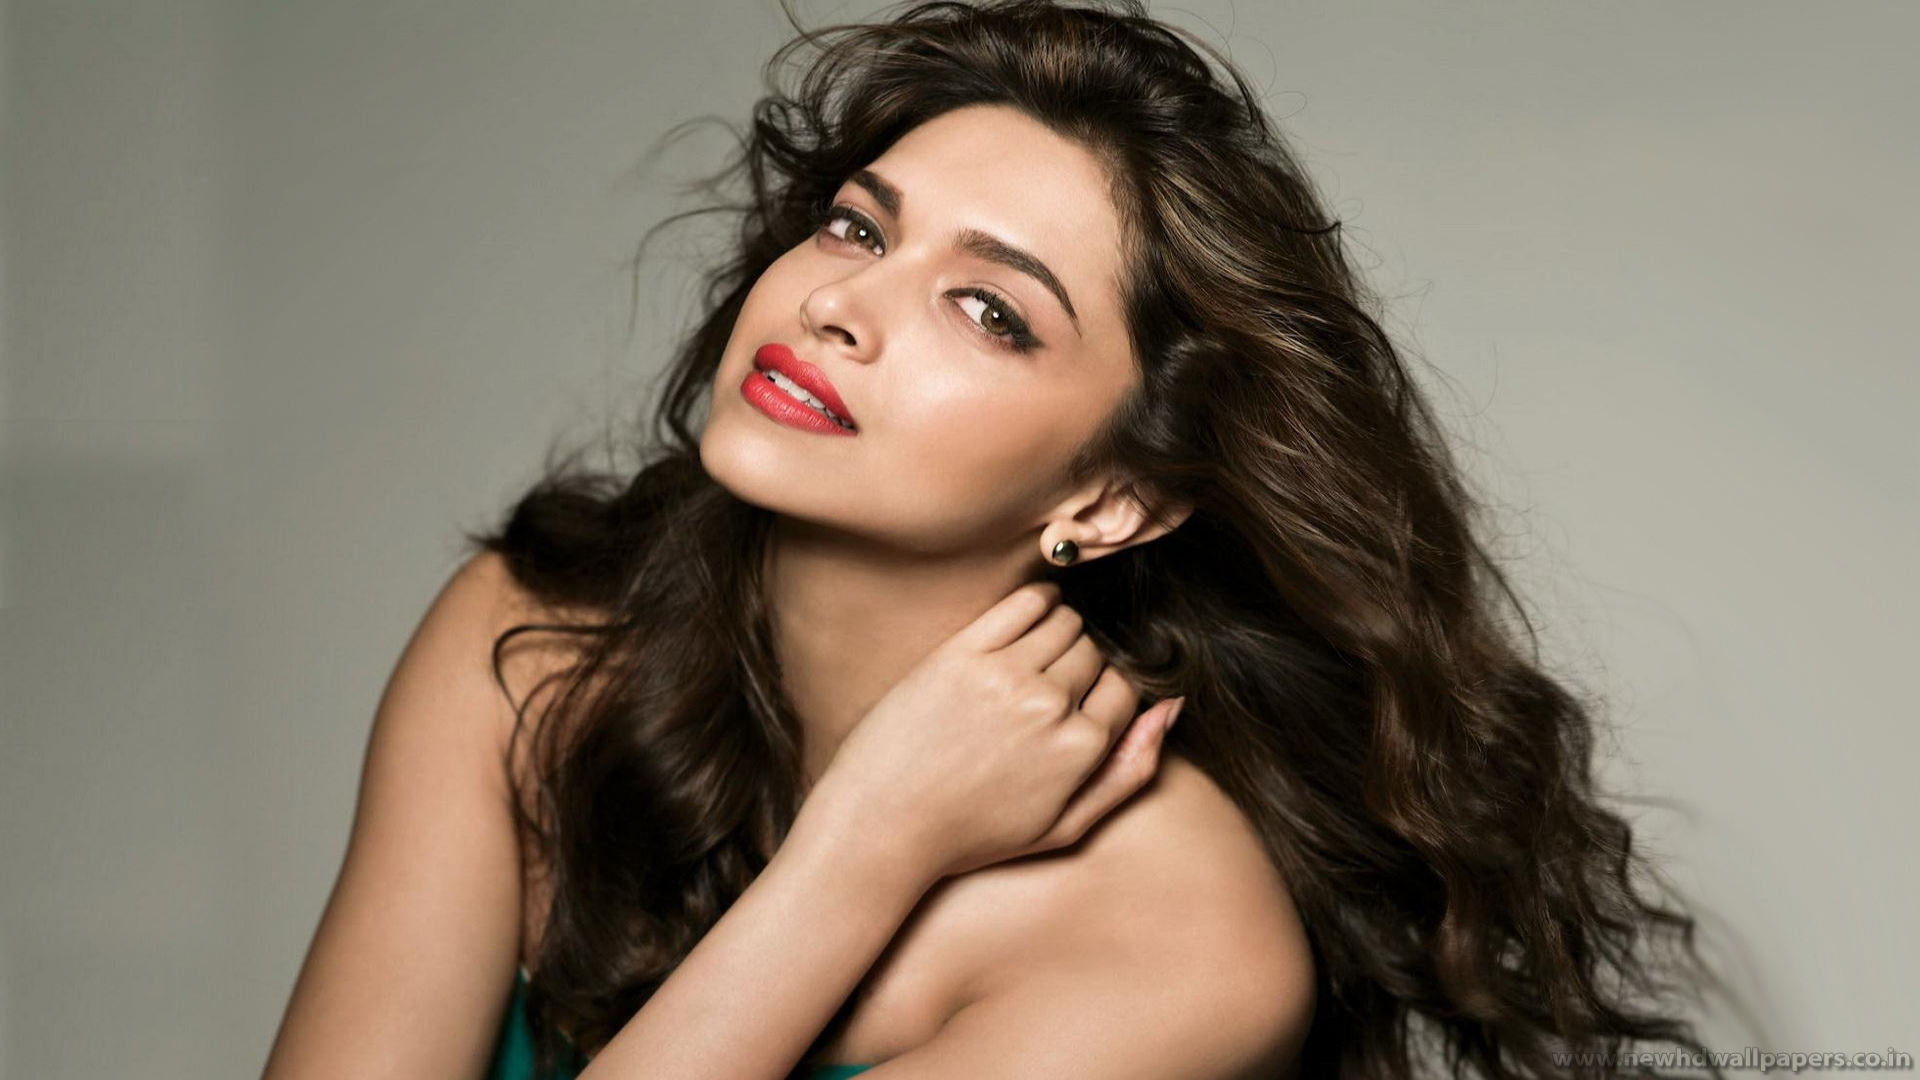 Deepika Padukone Wallpapers, Pictures, Images